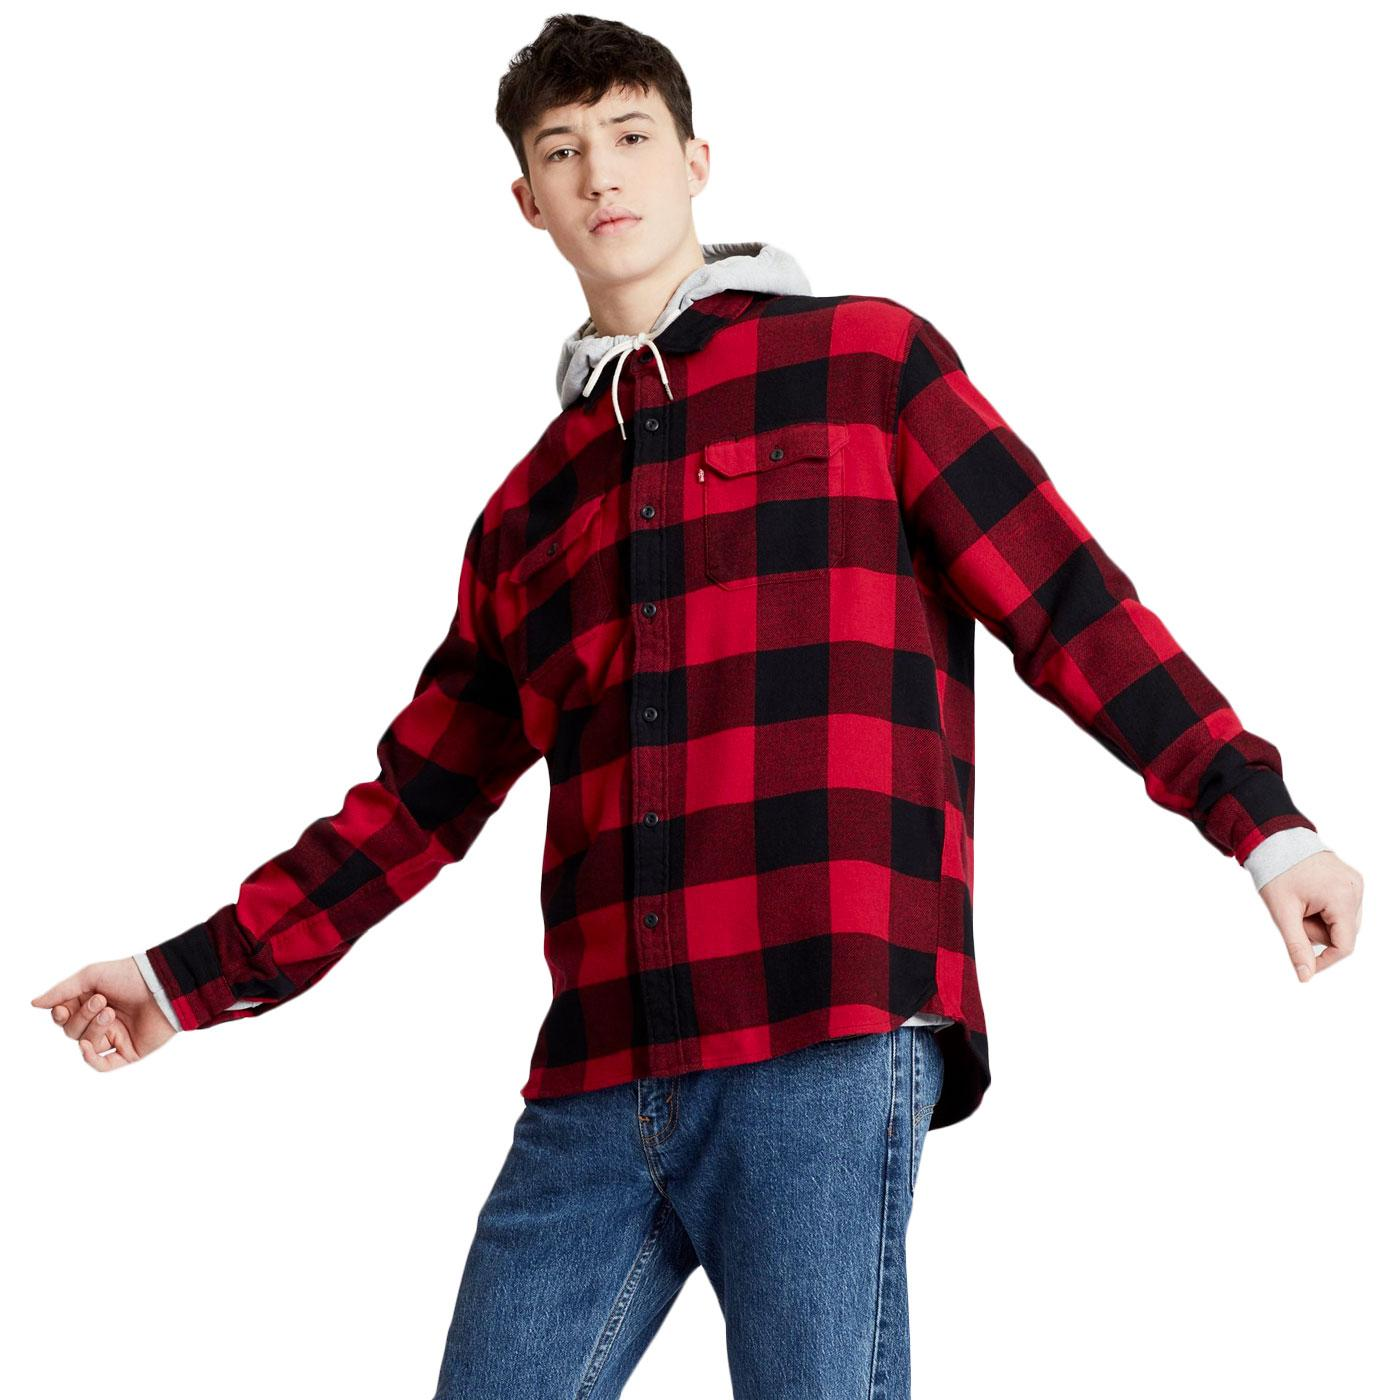 Jackson LEVI'S Retro Plaid Check Worker Shirt (C)